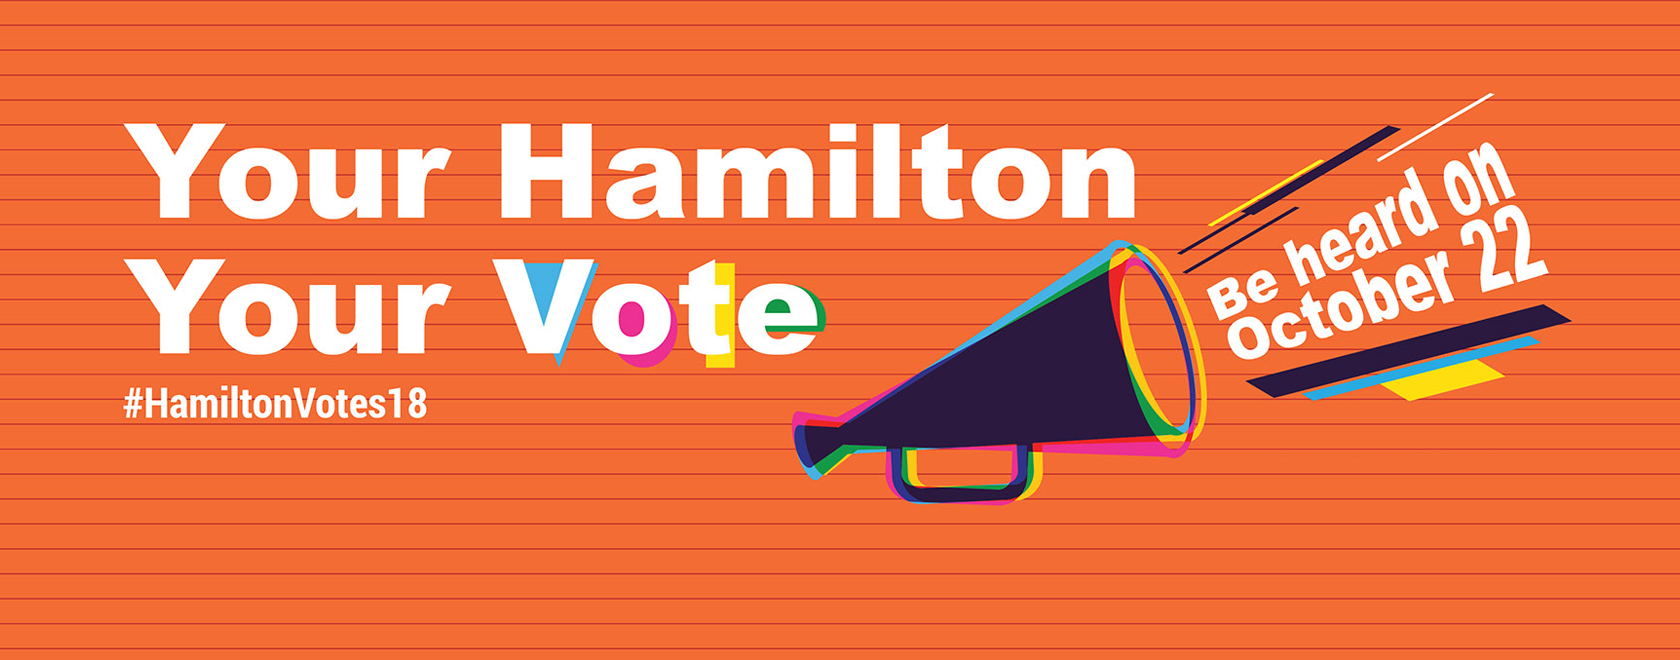 Map Of Canada 2017 Election Results.Municipal Election City Of Hamilton Ontario Canada